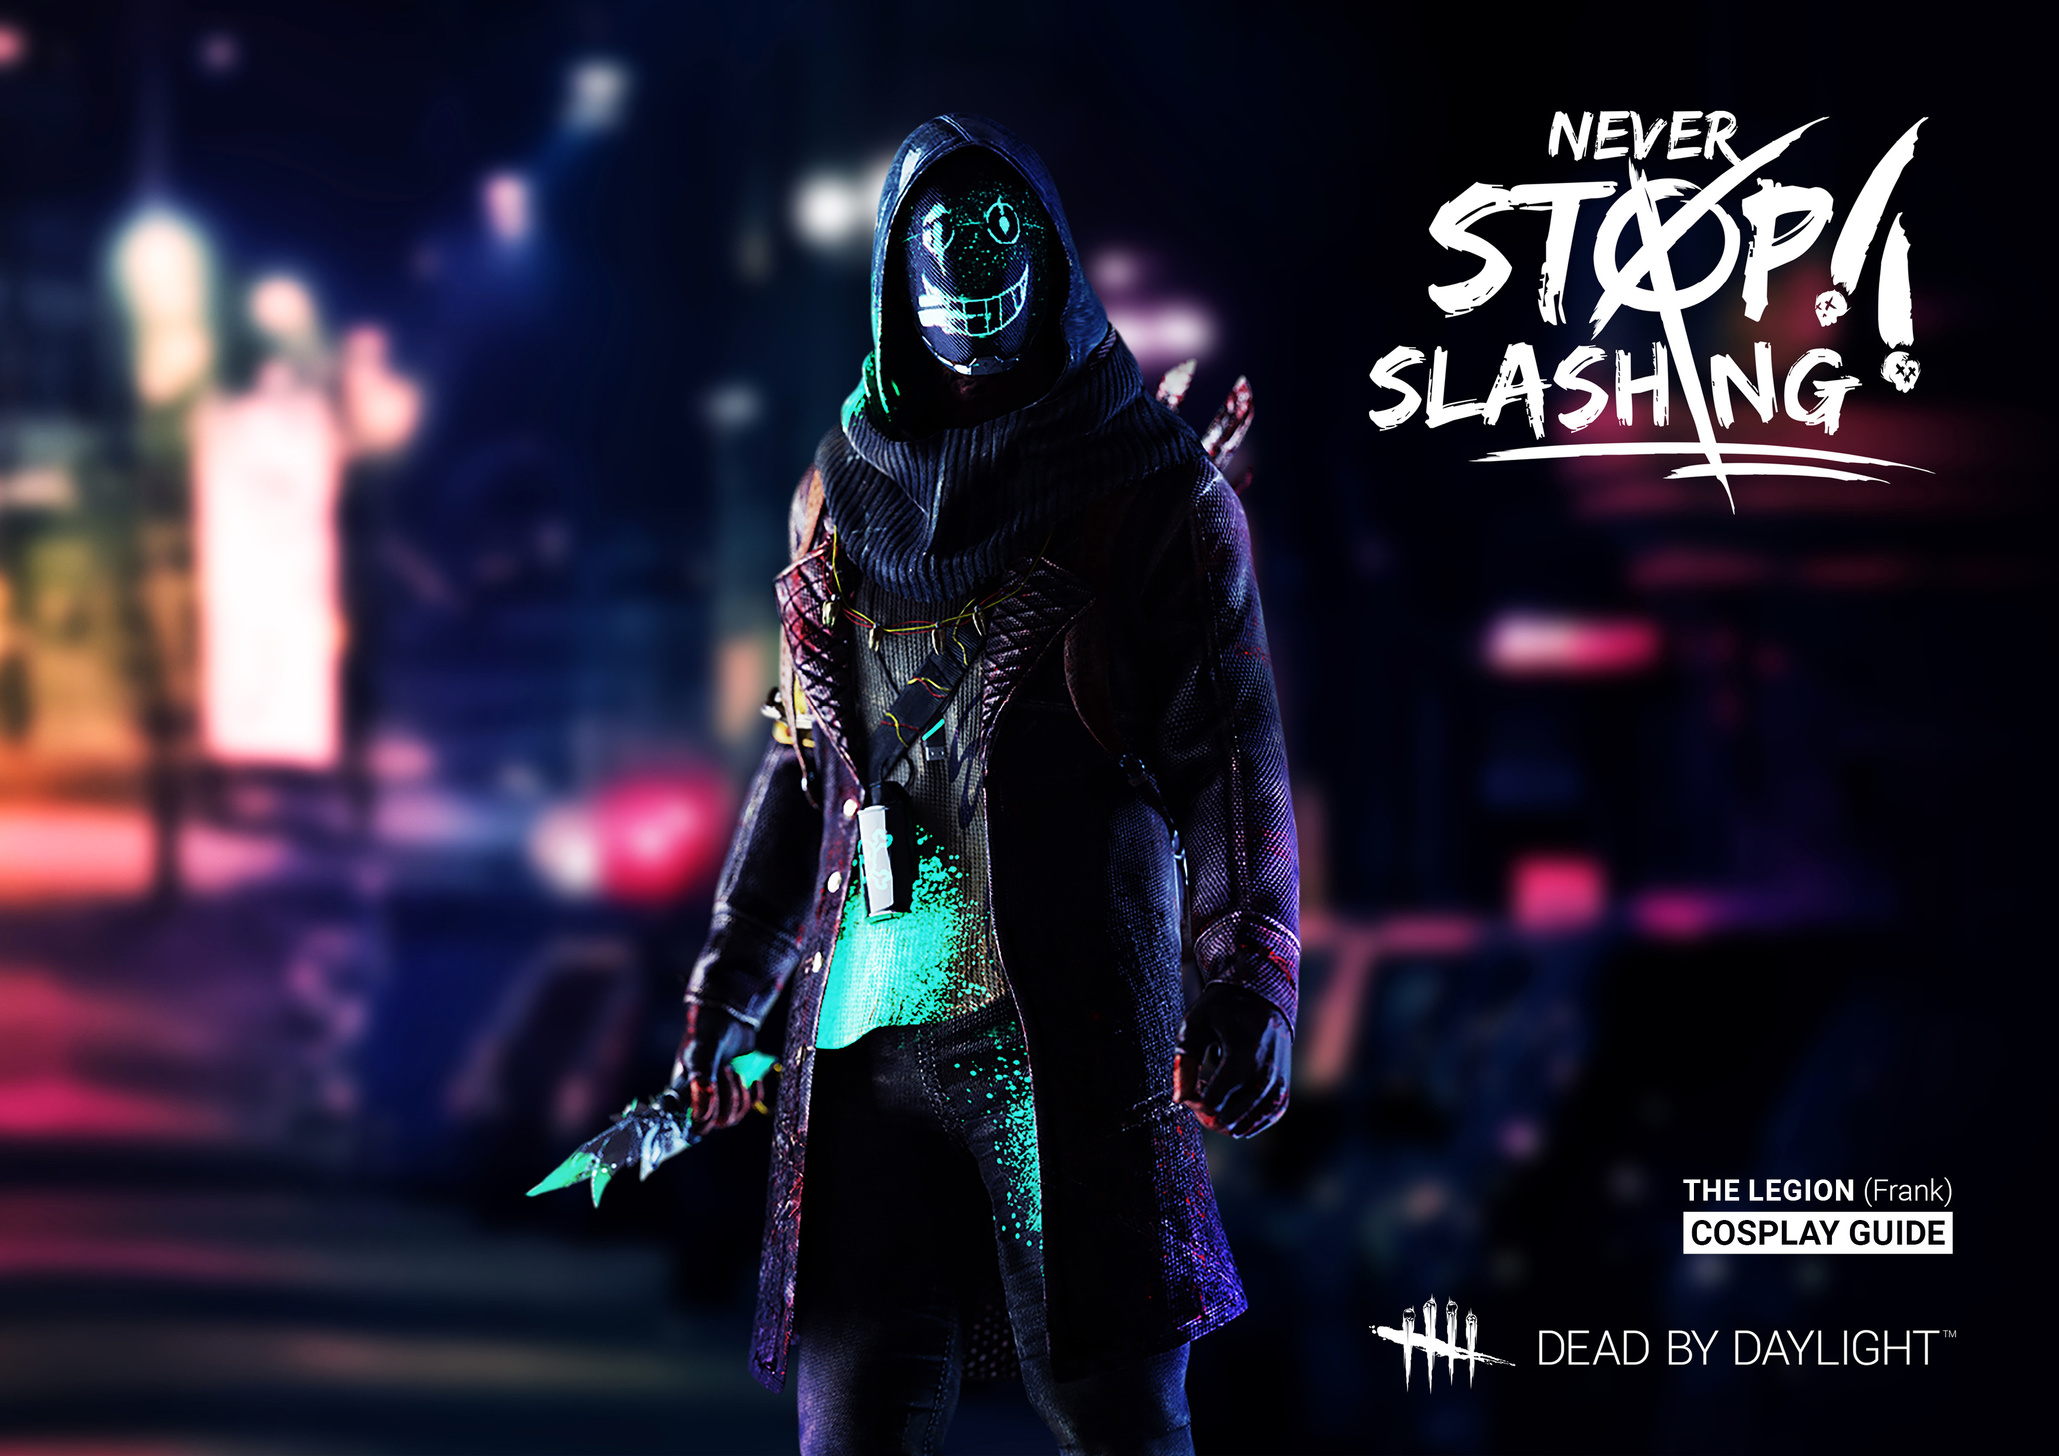 Dead By Daylight - The Legion (Frank) - Never Stop Slashing - Cosplay Guide.jpg